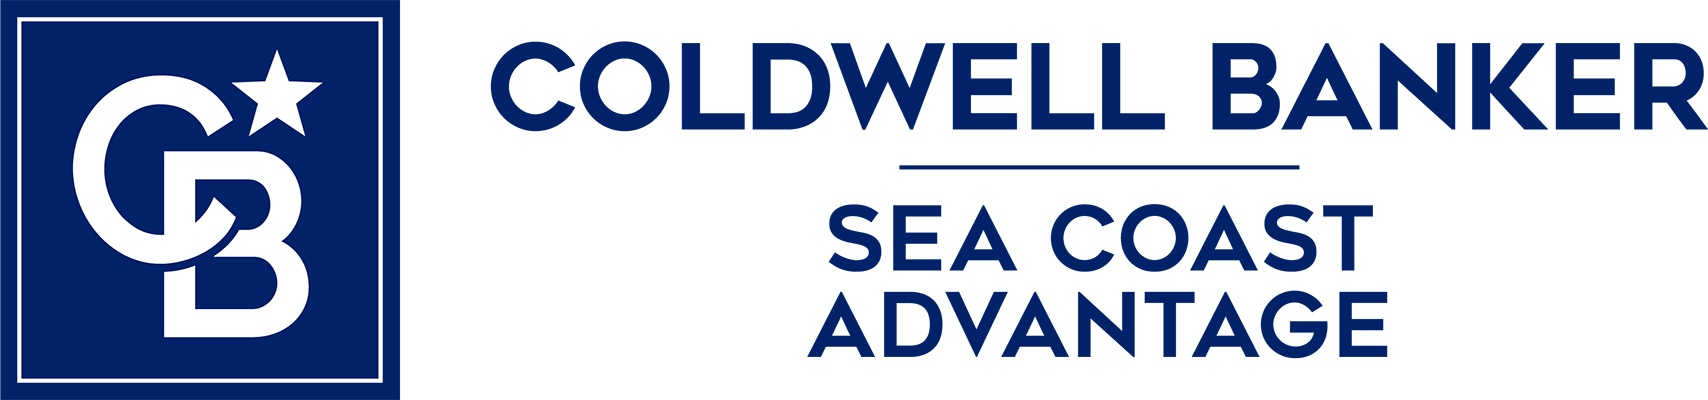 Coldwell Banker Sea Coast Advantage - Sweet T Realty Logo